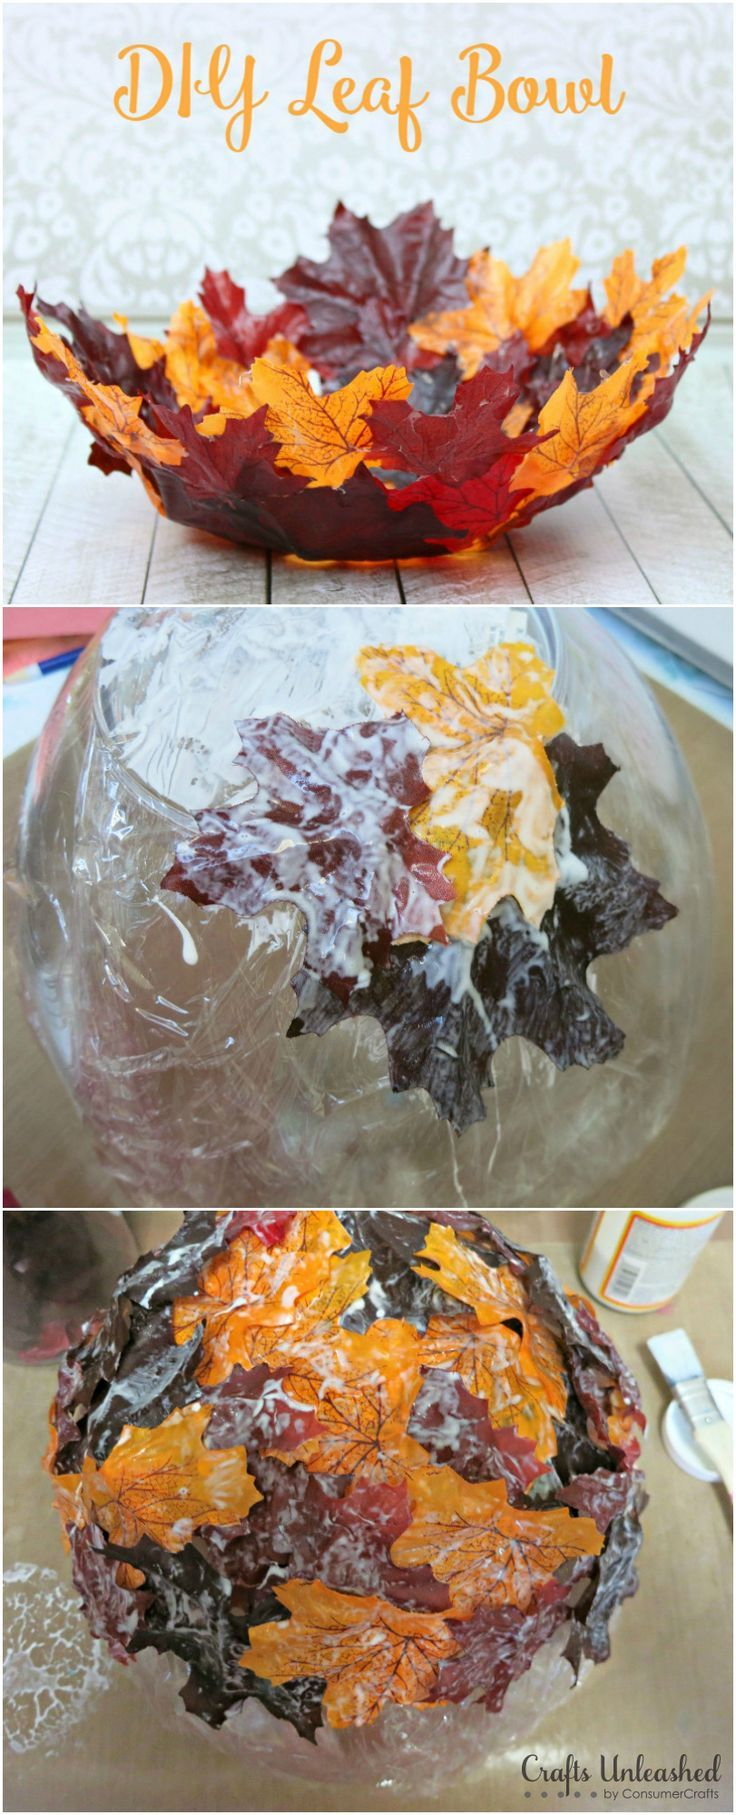 DIY Decorative Leaf Bowl for Fall